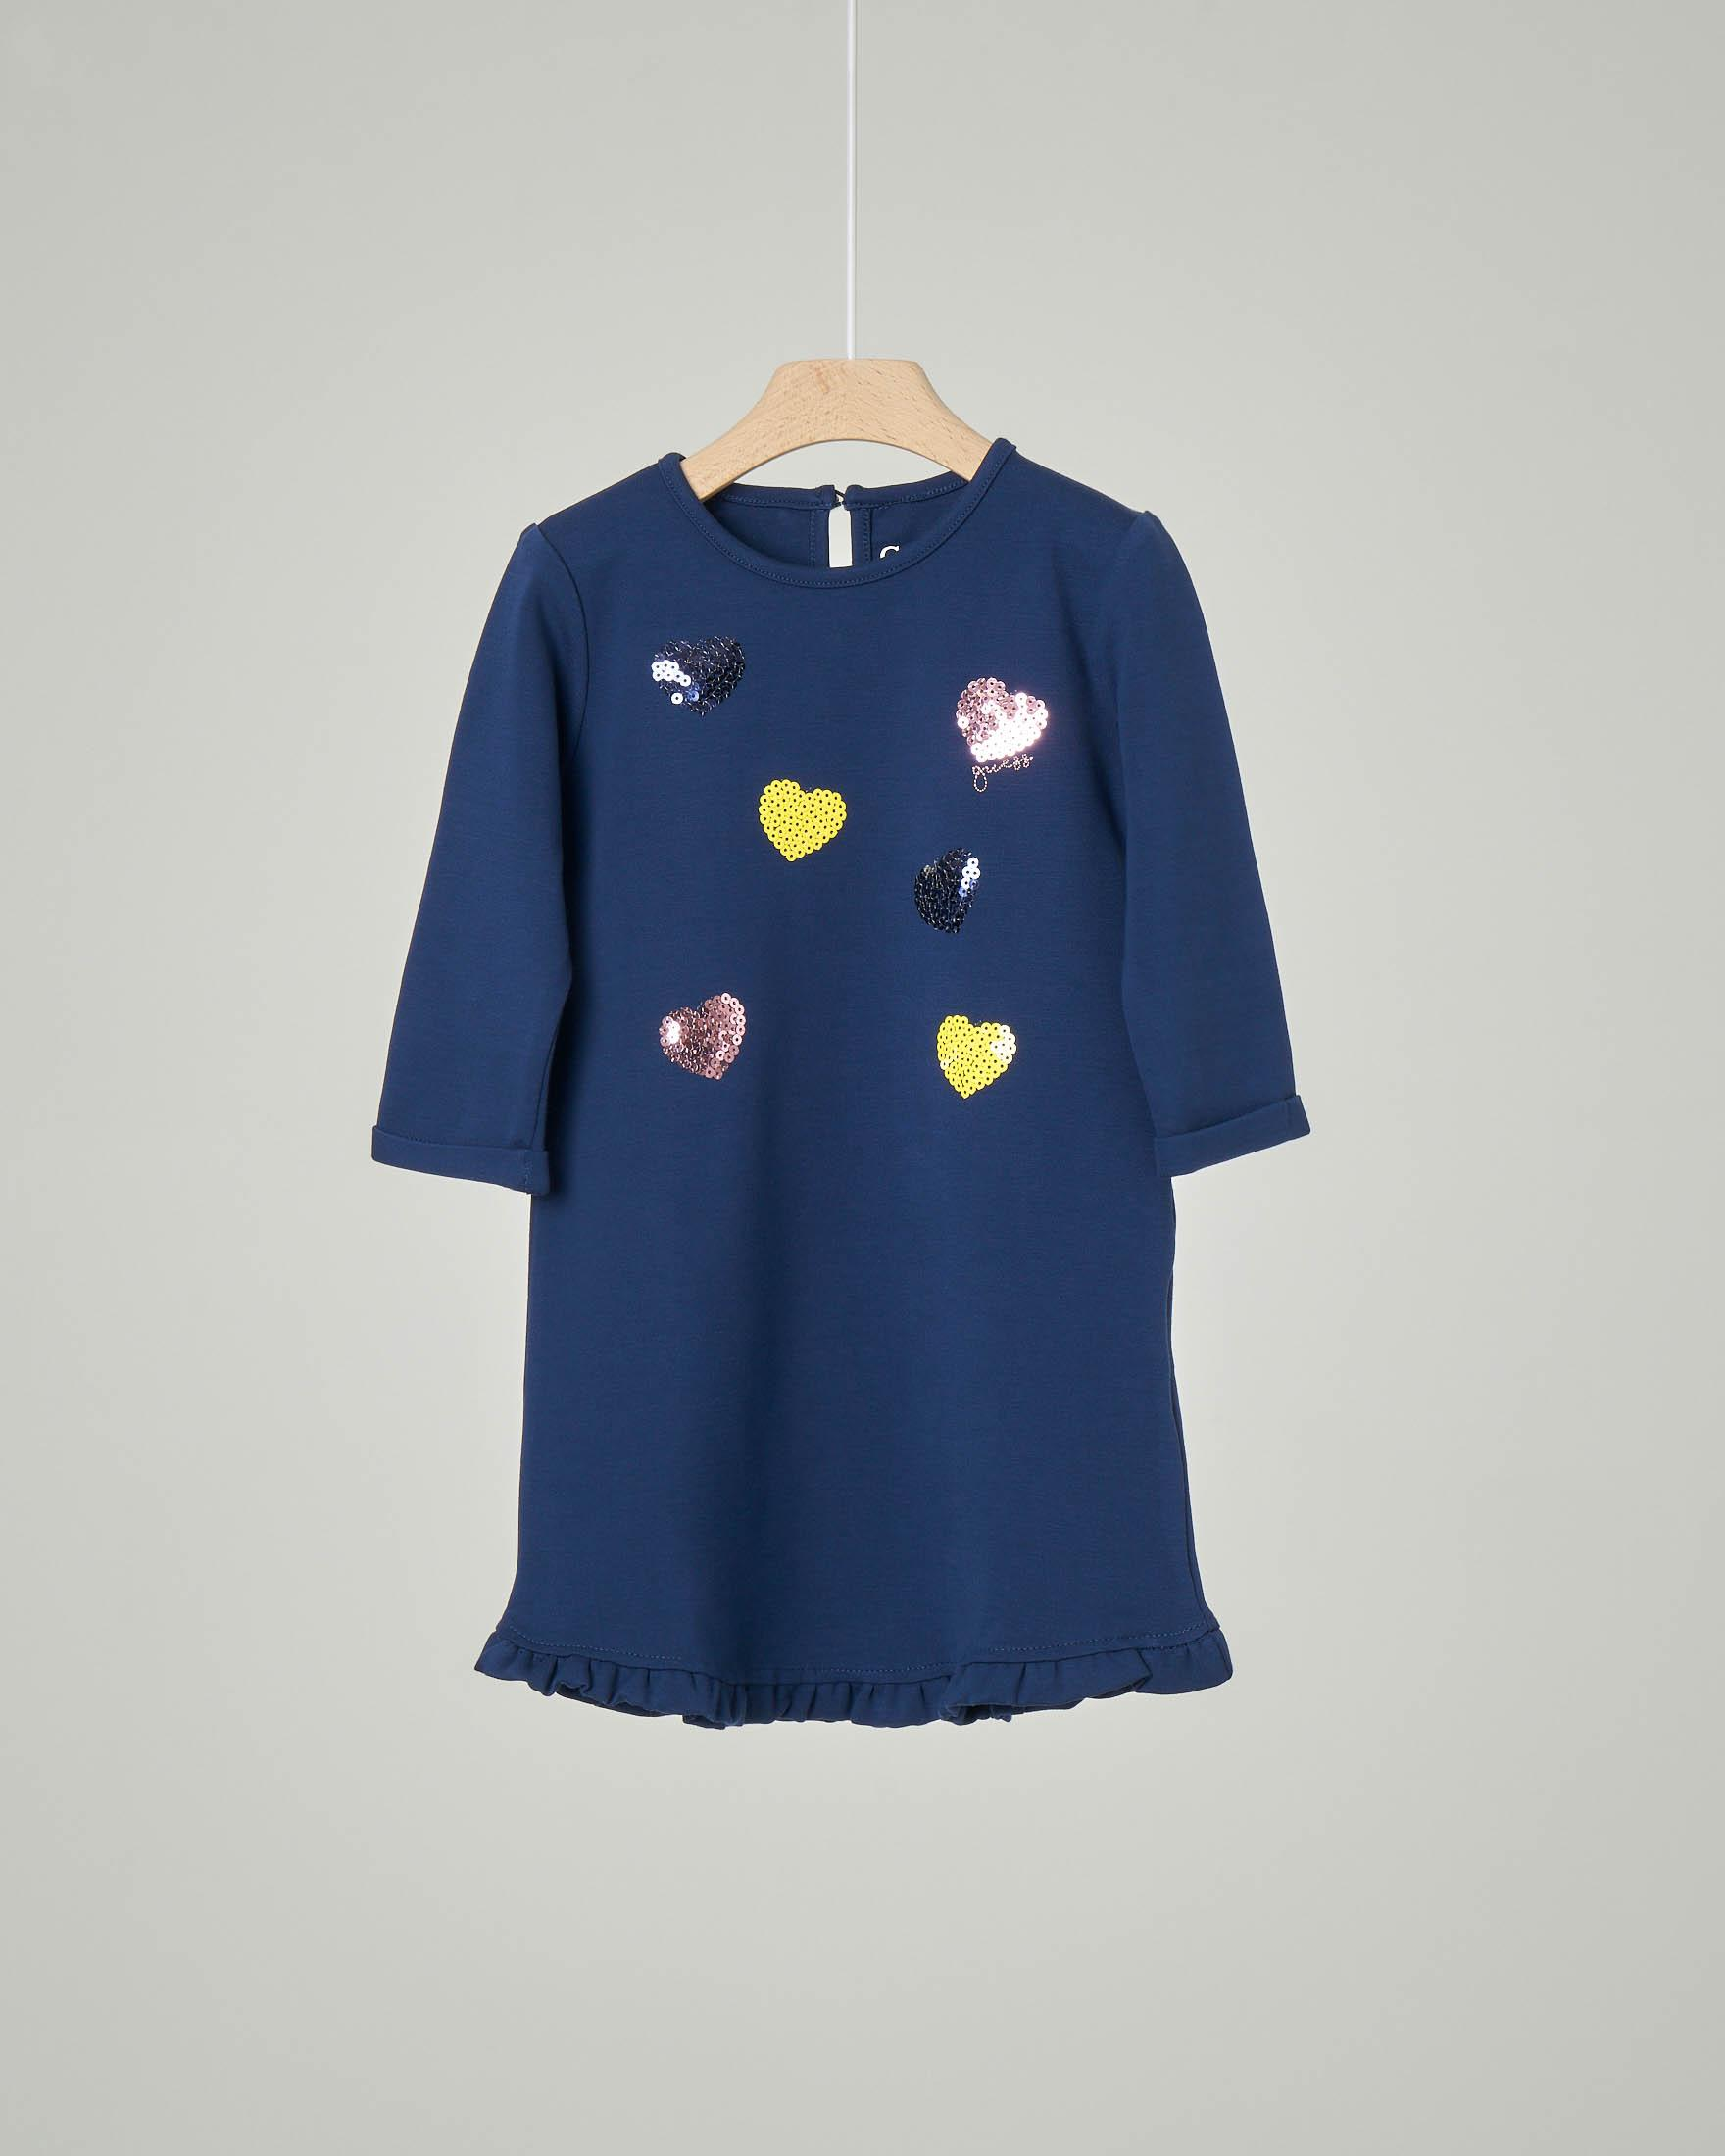 Abito blu in misto viscosa con cuori in paillettes applicati 3-7 anni